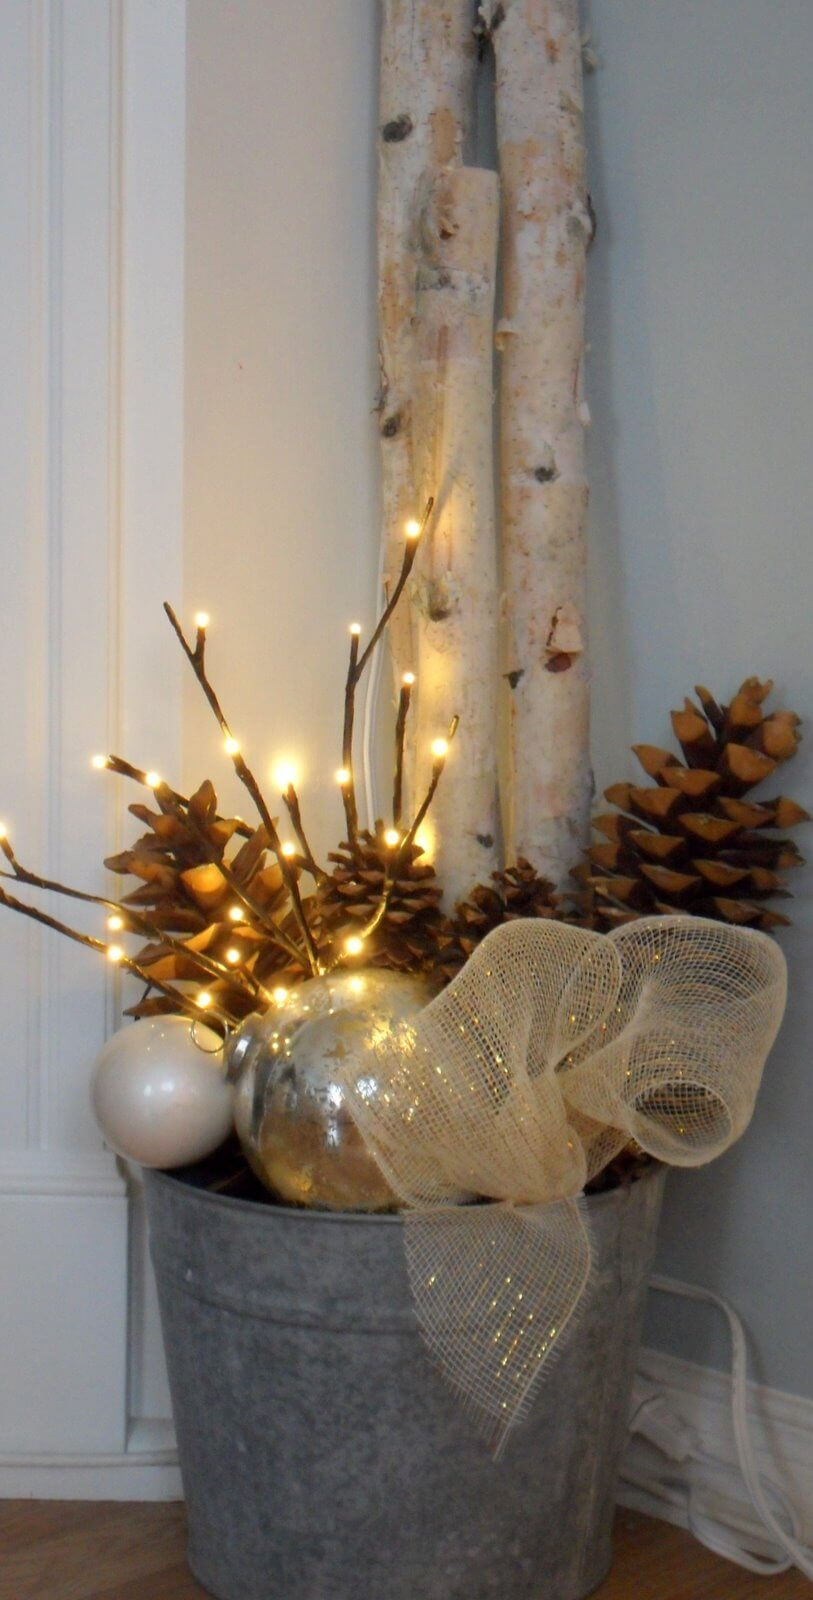 Simple Light-filled Holiday Arrangement